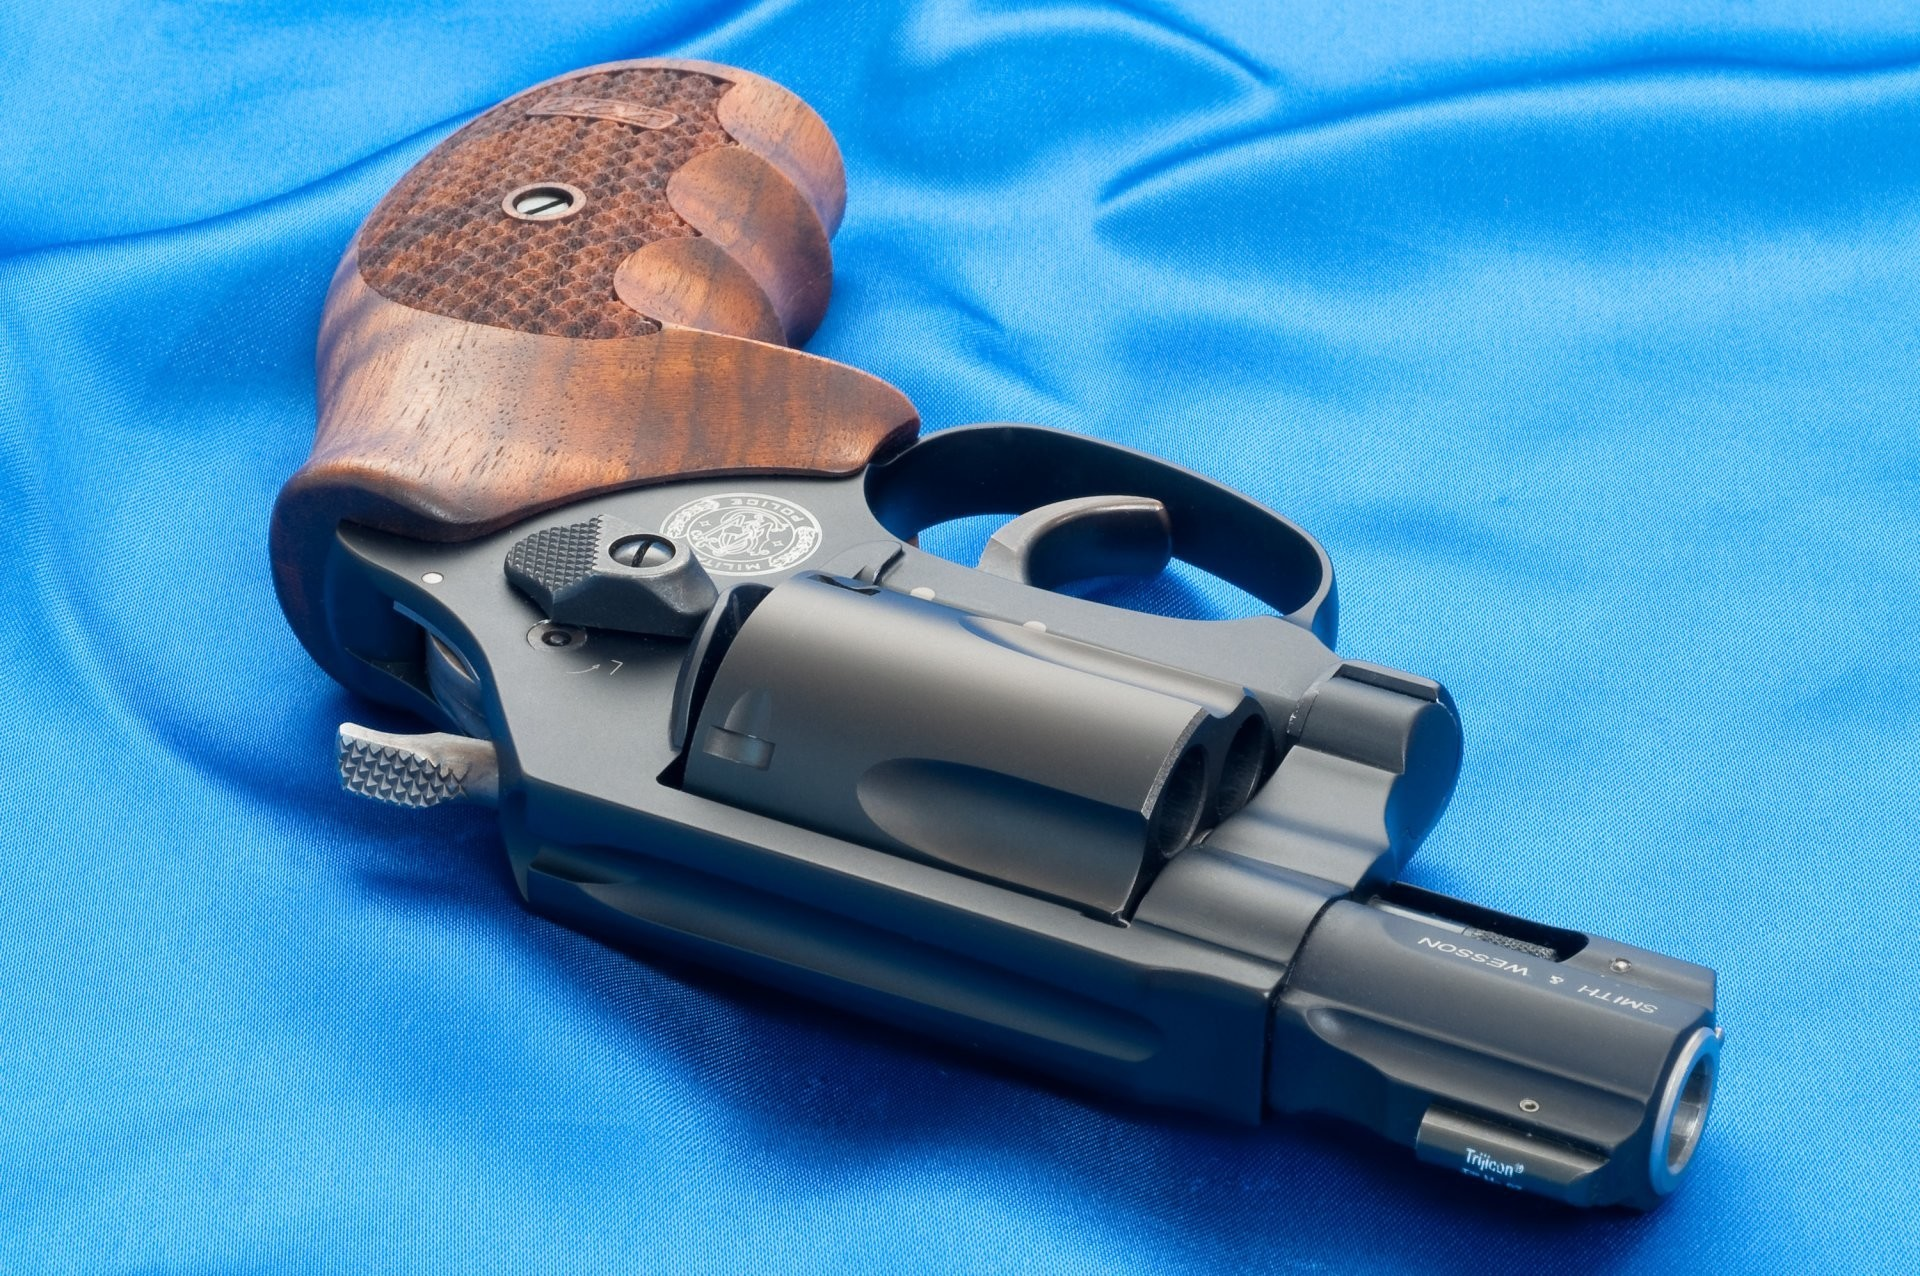 smith & wesson mp360 weapons wallpapers smith wesson weapon wallpaper  revolver mp 360